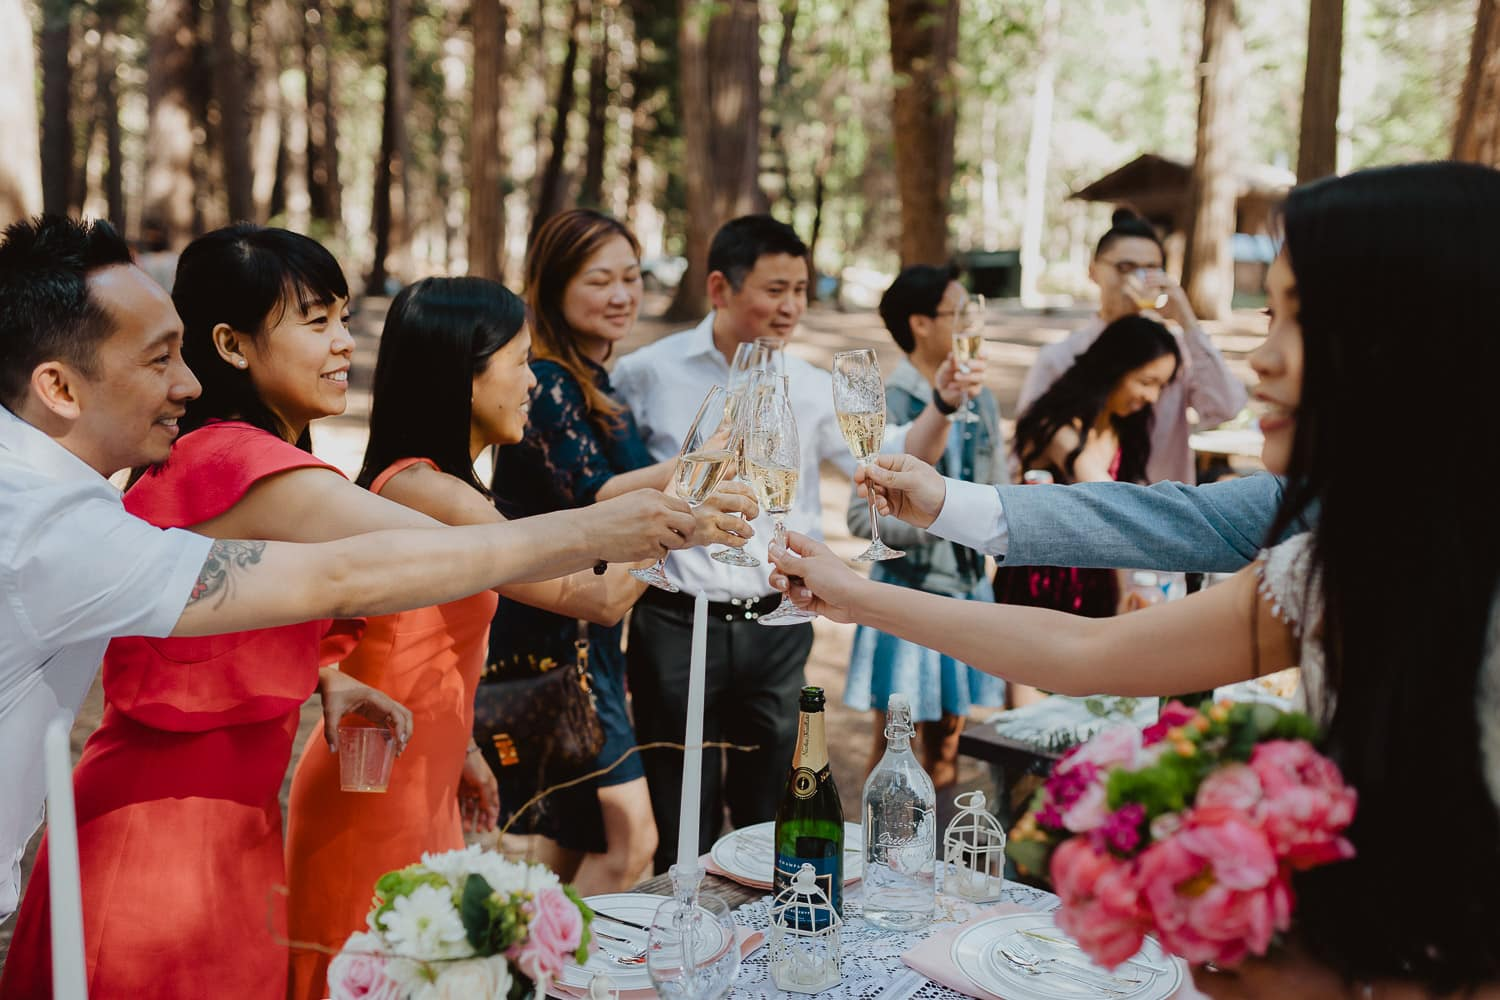 toasting champagne with family in forest